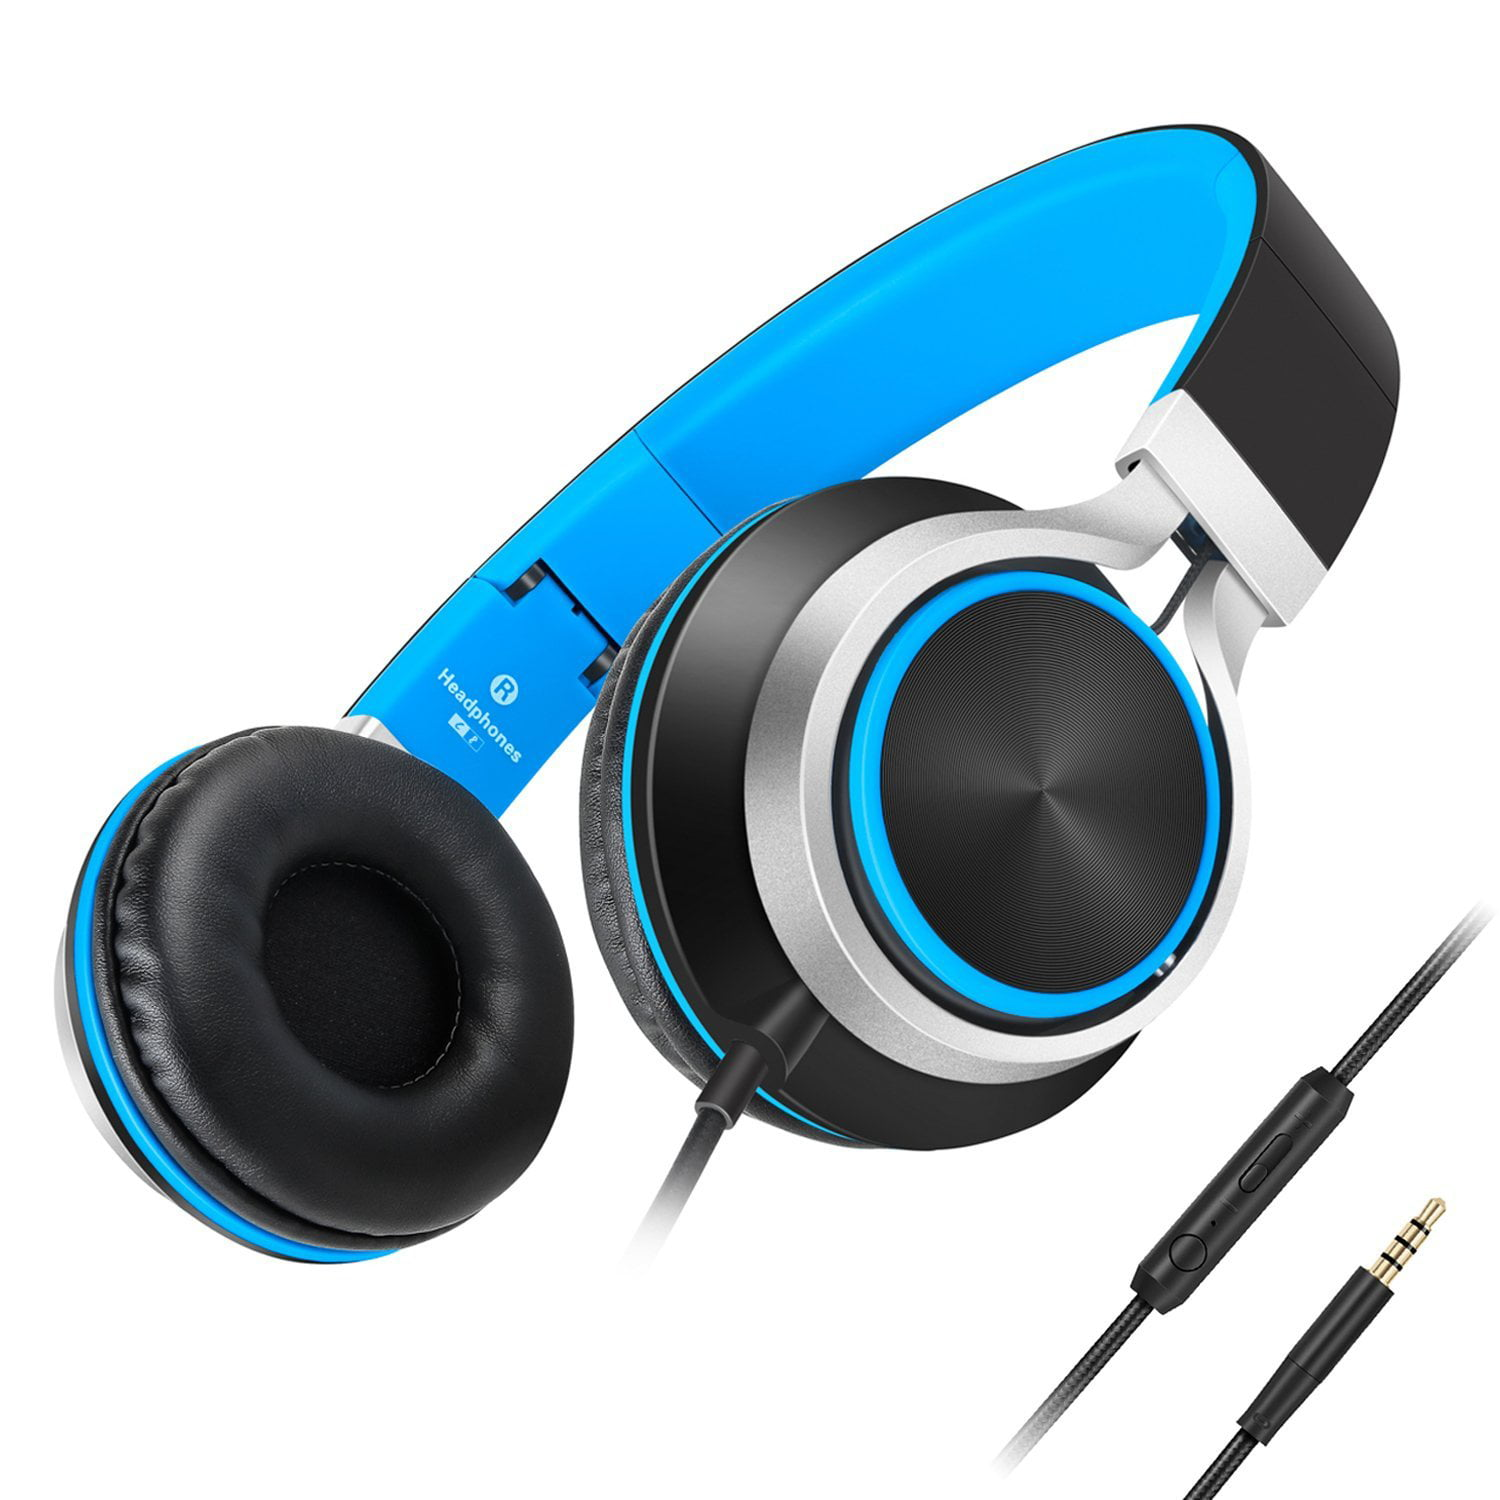 Headphones,AILIHEN C8 Lightweight Foldable Headphone with Microphone Mic  and Volume Control for iPhone,iPad,iPod,Android